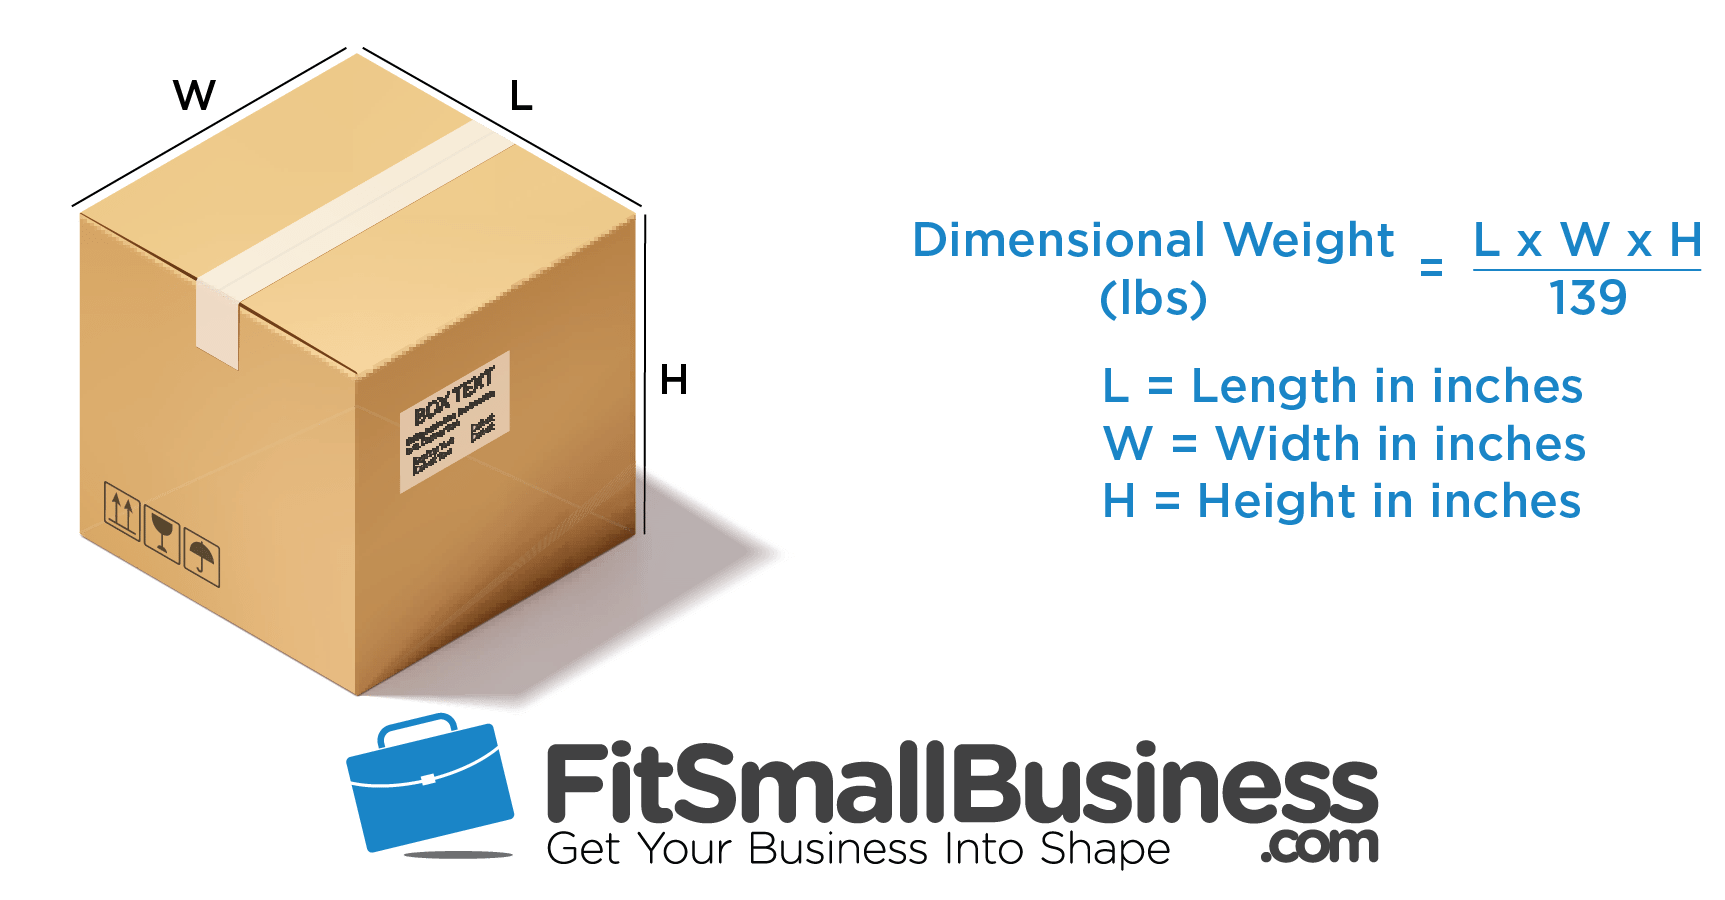 Dimensional Weight Calculator - UPS and FedEx